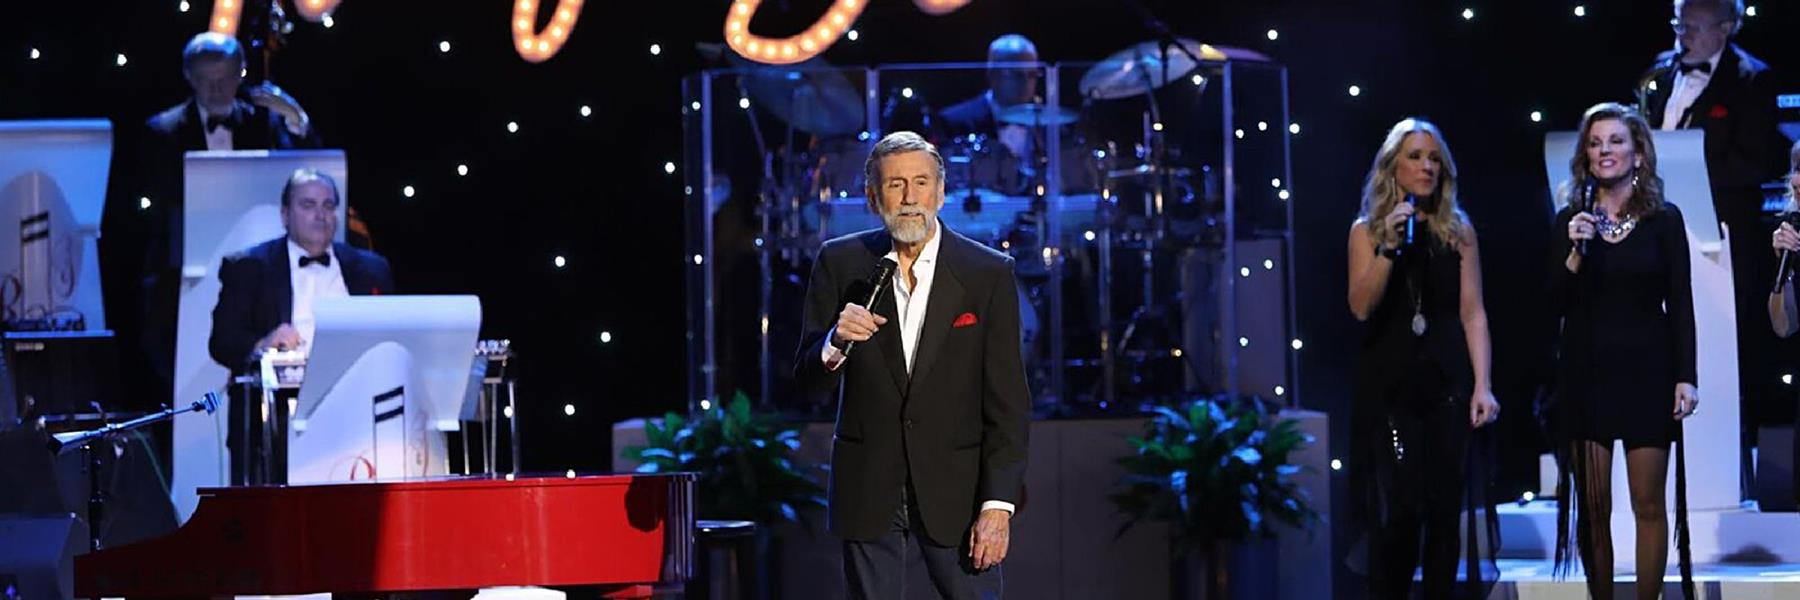 Ray Stevens Show in Nashville, Tennessee